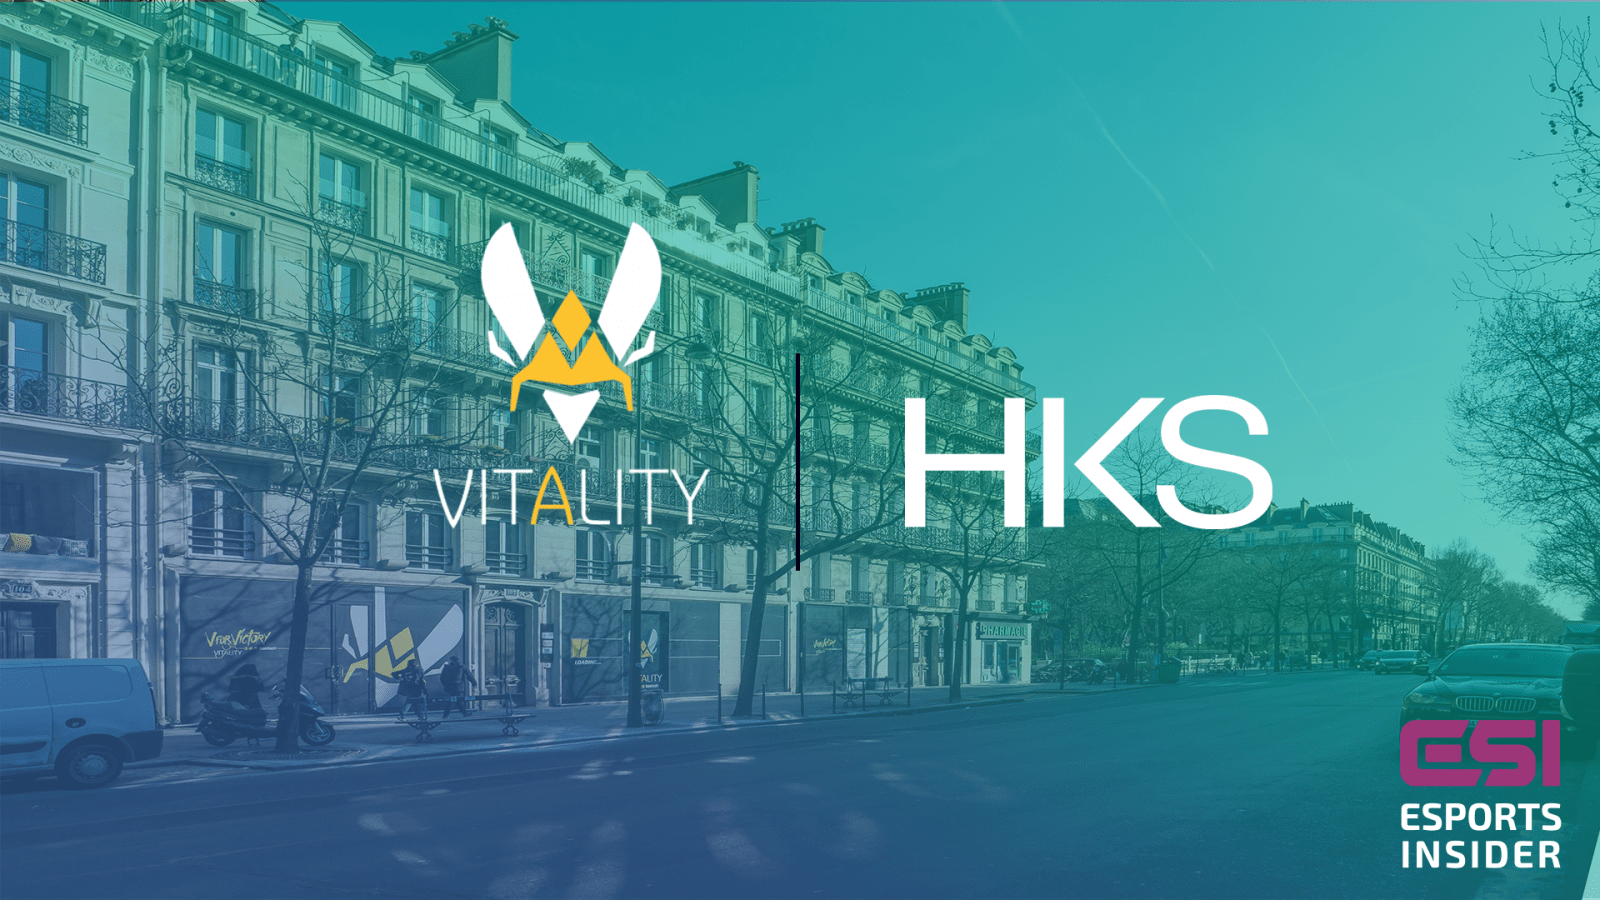 Team Vitality partners with HKS for new Paris HQ